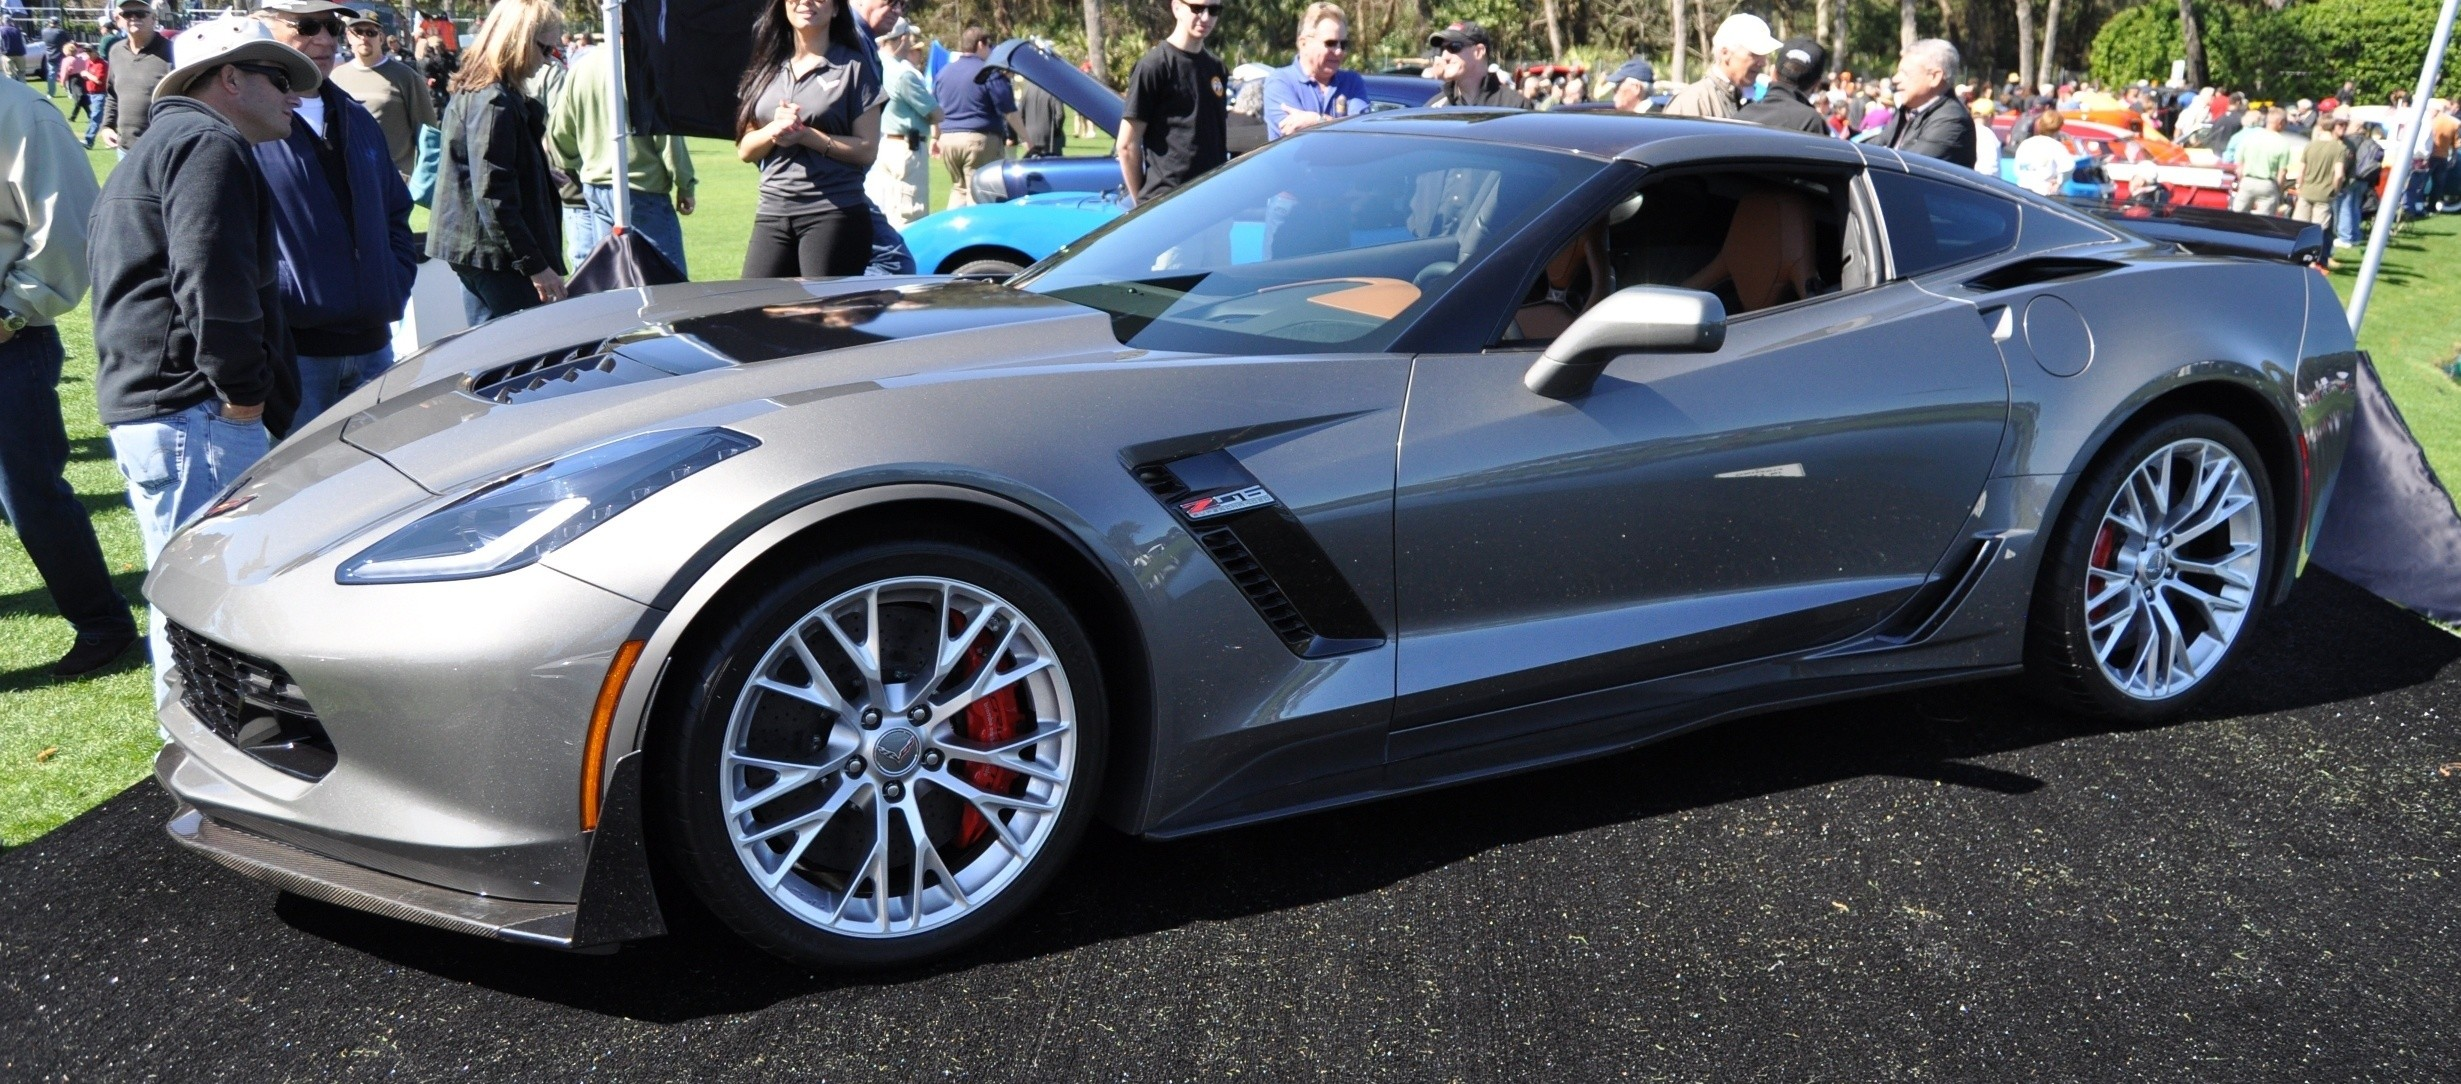 2015 Z06 -- First Outdoor Showing -- Forthcoming Chevrolet Corvette Track Monster Holds Still For 26 High-Res Photos 25